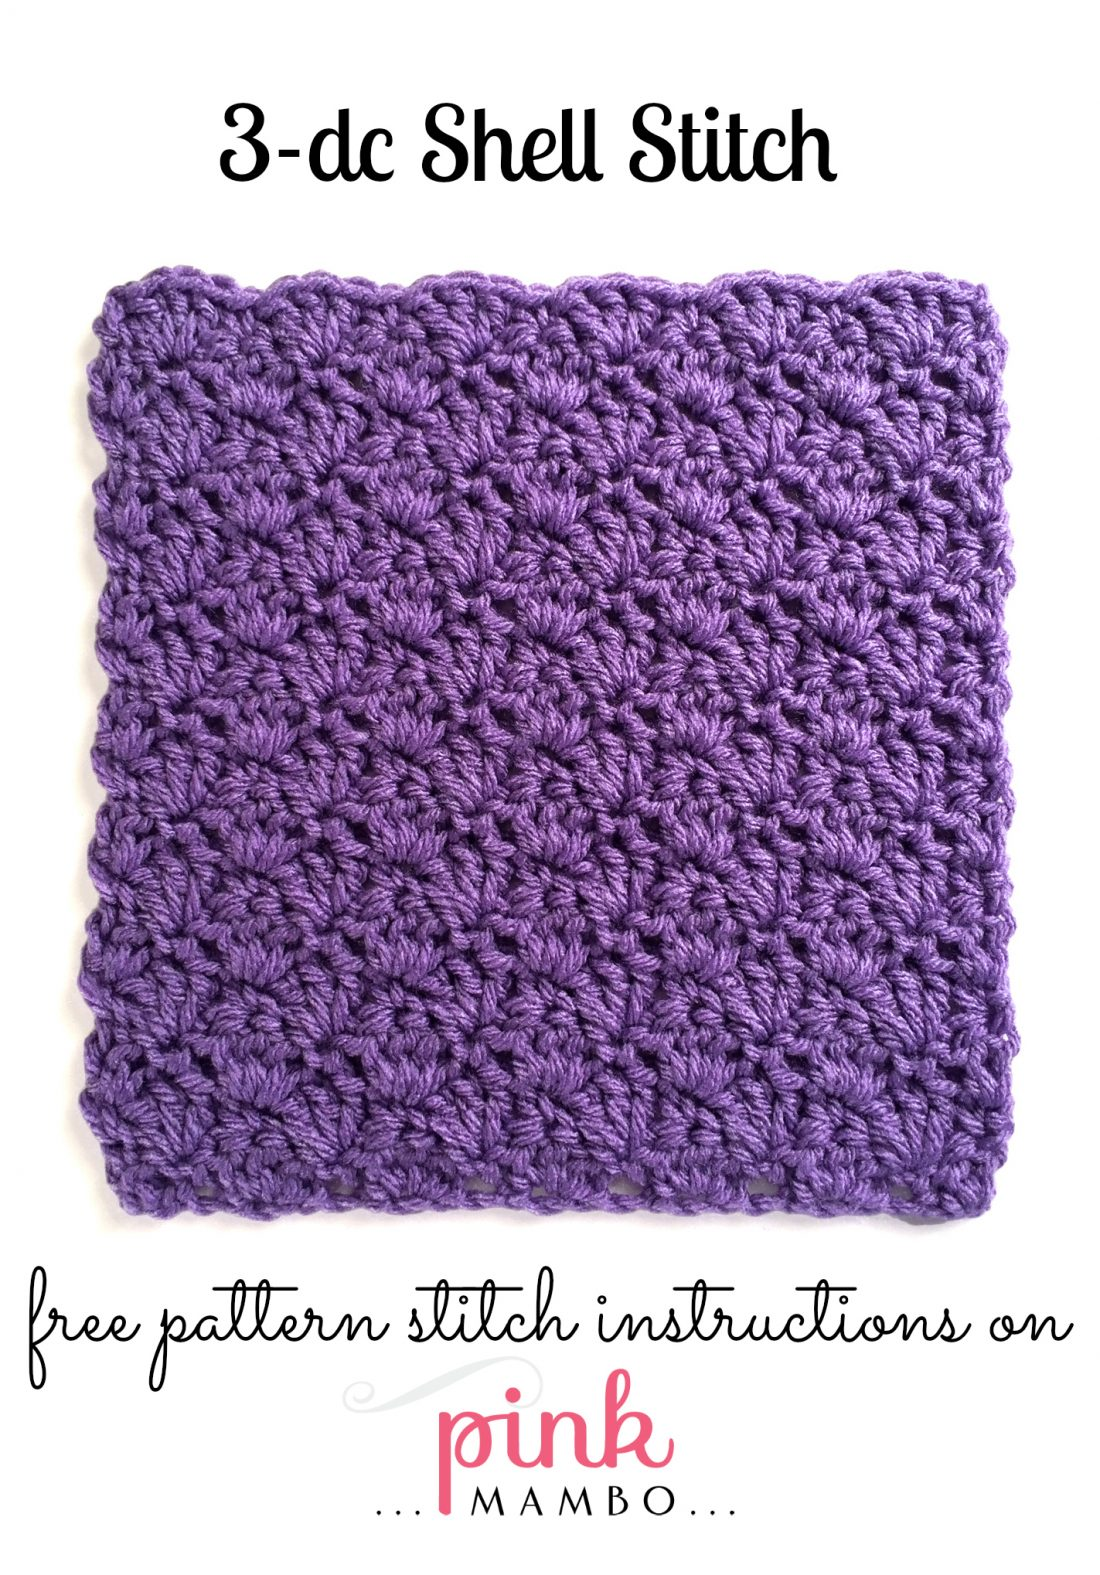 Crochet Stitches Shell Video : Double Crochet Shell Stitch Pattern